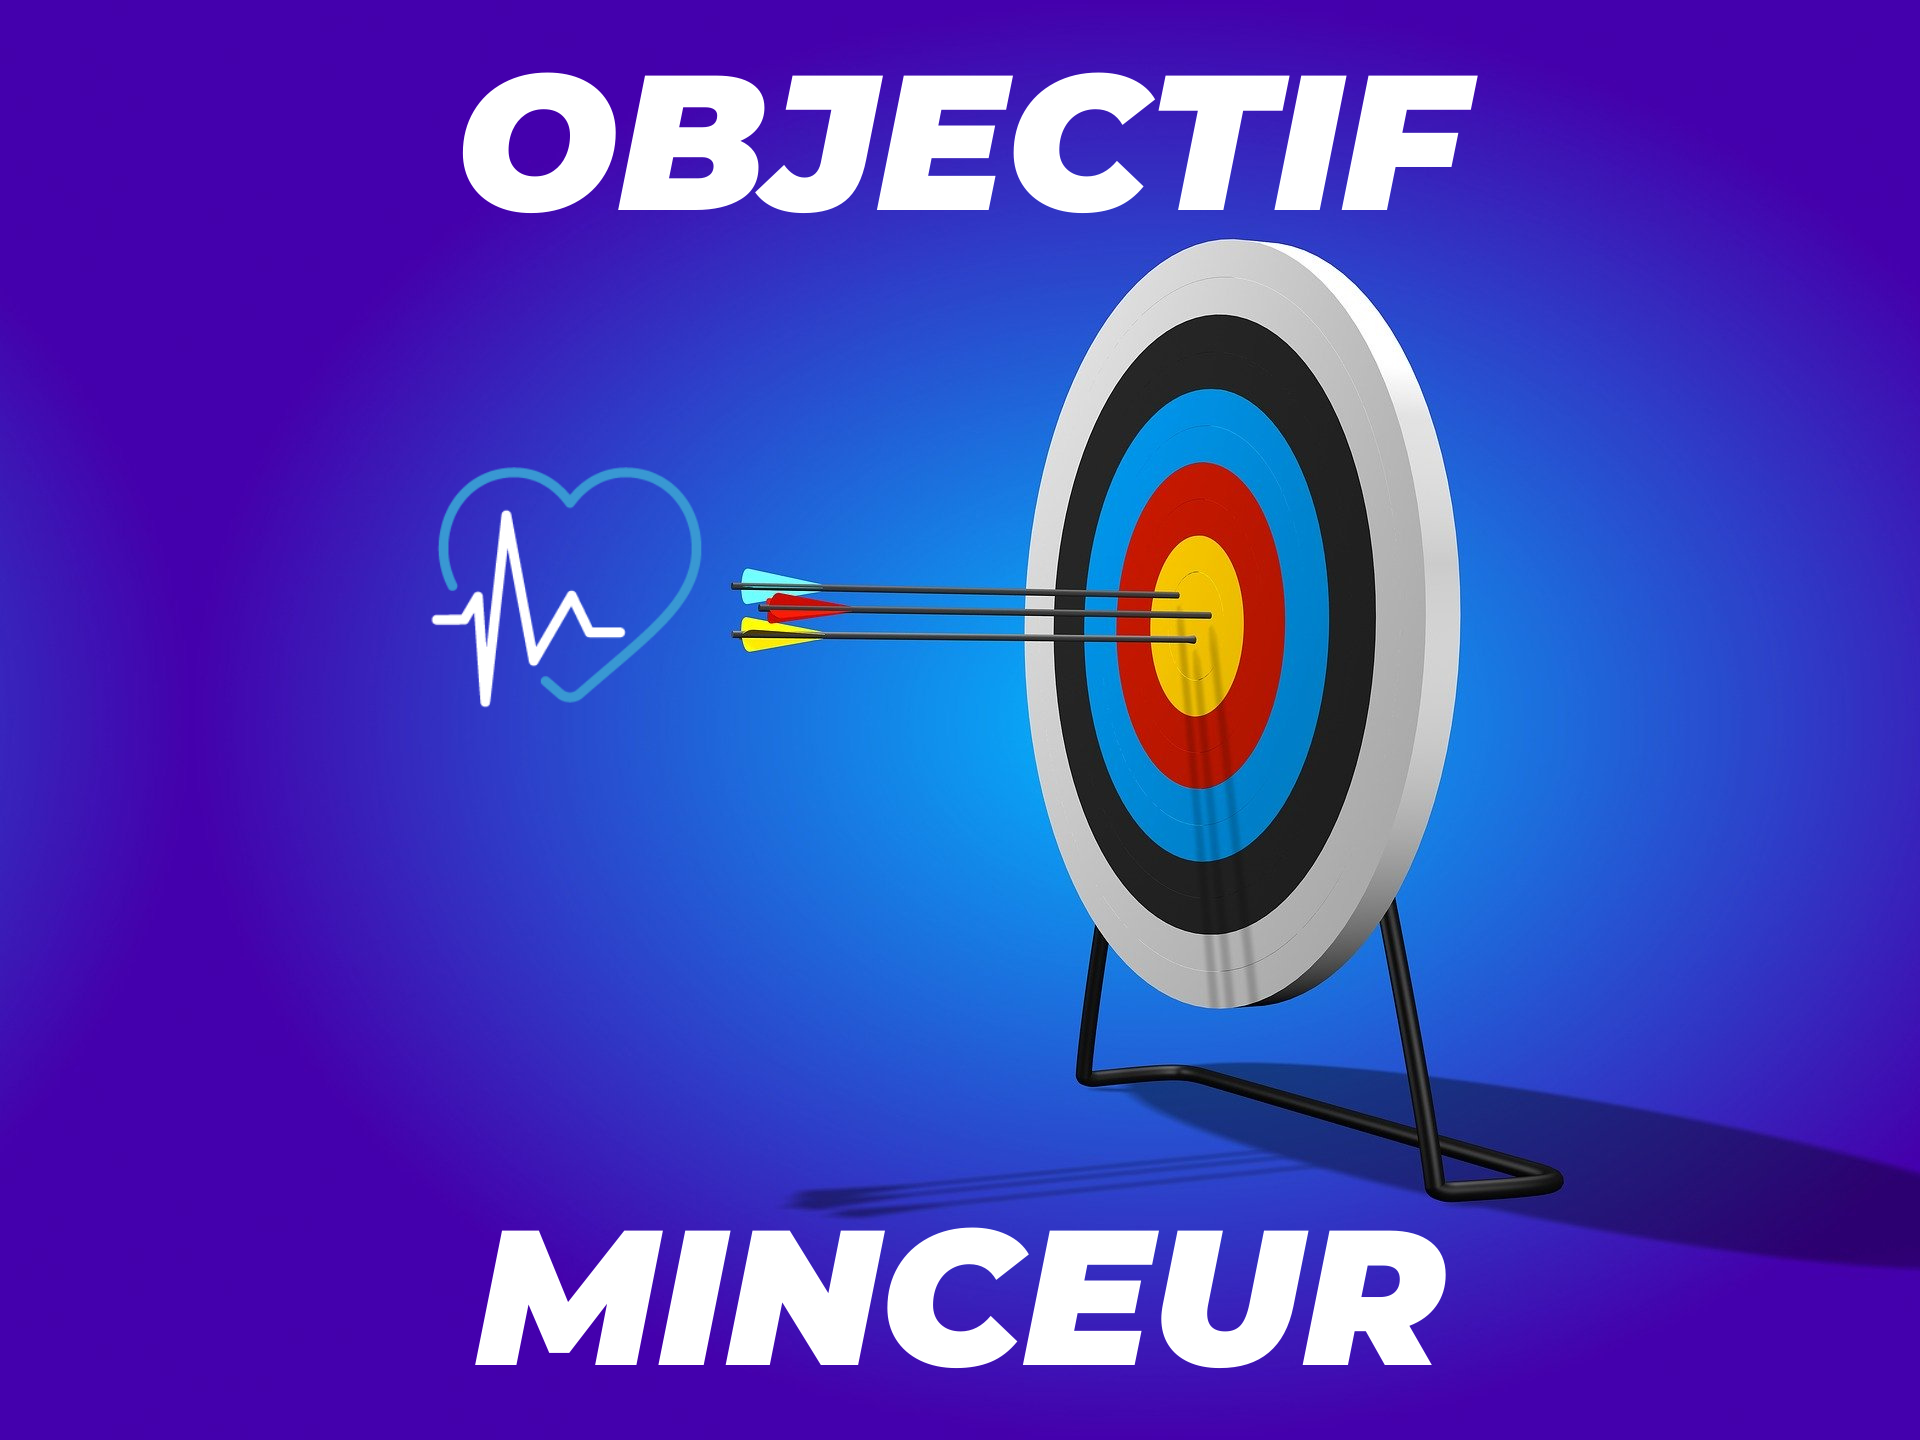 OBJECTIF MINCEUR AMINCISSEMENT CRYOLIPOLYSE ANTI CELLULITE